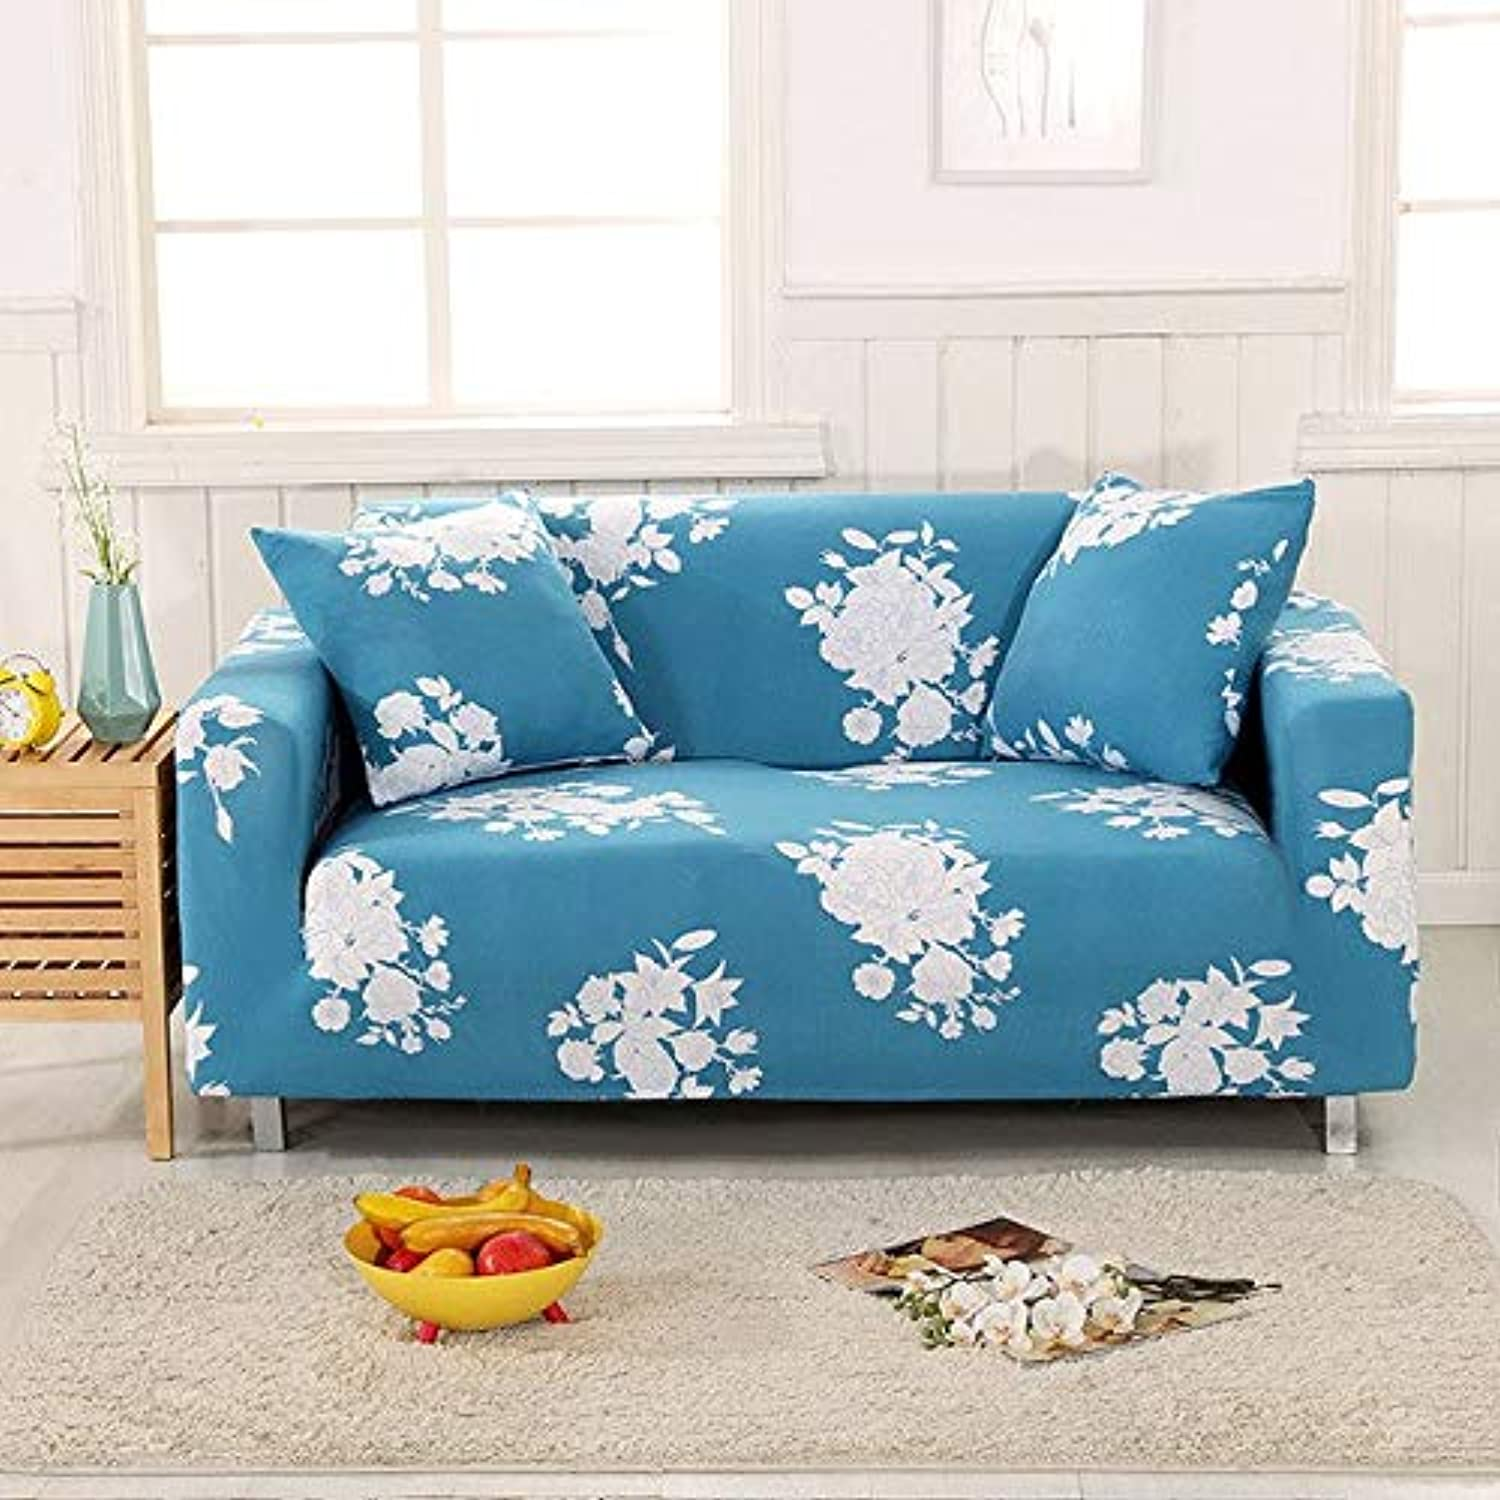 Fashion SofacoverTight Wrap All-Inclusive Slip-Resistant Sofa Sofa Towel Elastic Couch Cover Single Two Three Four-Seater   04, Two-seat